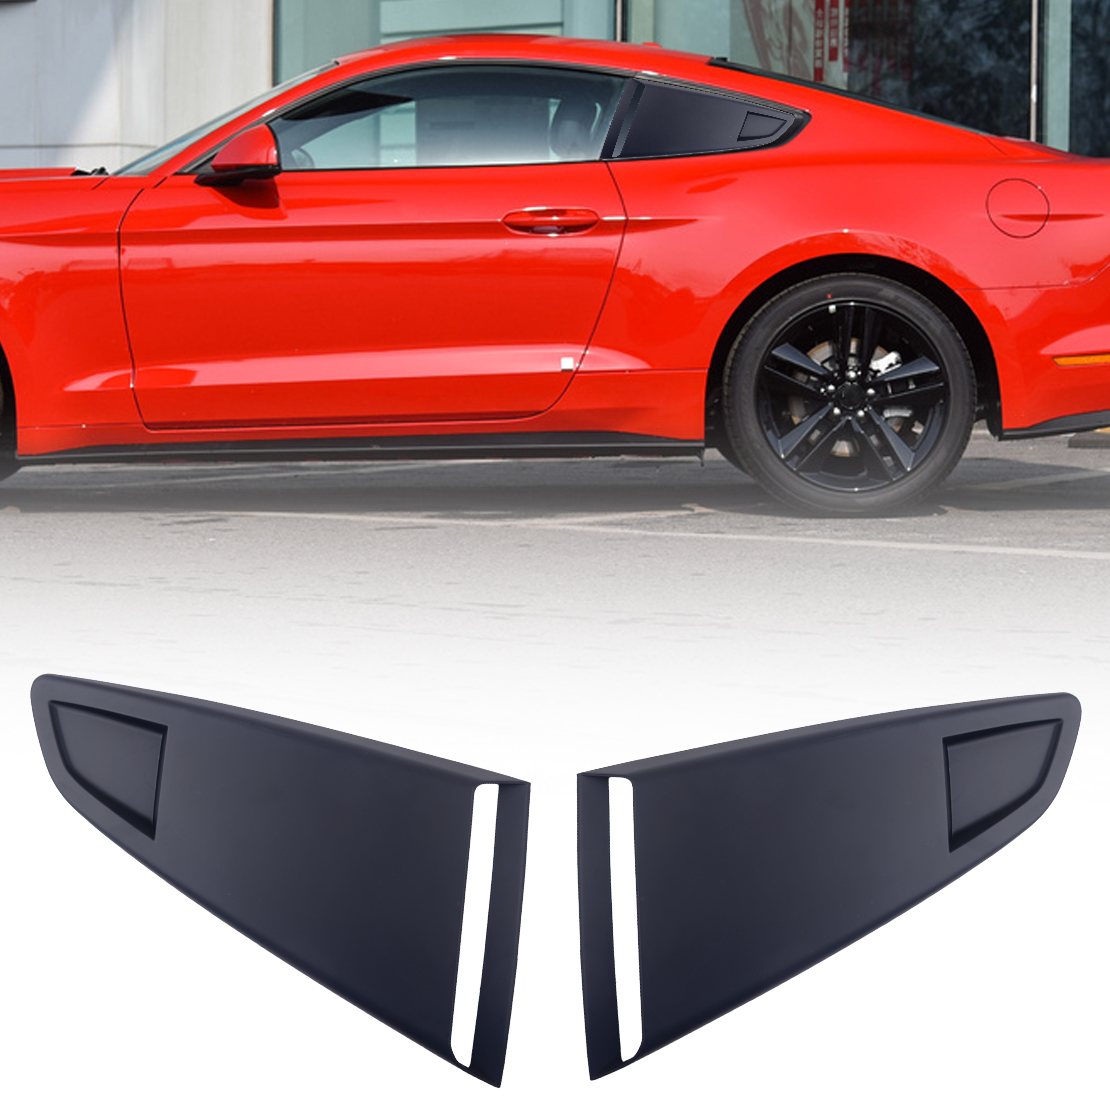 CITALL 1Pair Fit For <font><b>Ford</b></font> <font><b>Mustang</b></font> <font><b>2015</b></font> 2016 2017 2018 Black Plastic Car Window Quarter Rear Louver Side Vent Scoop Cover image